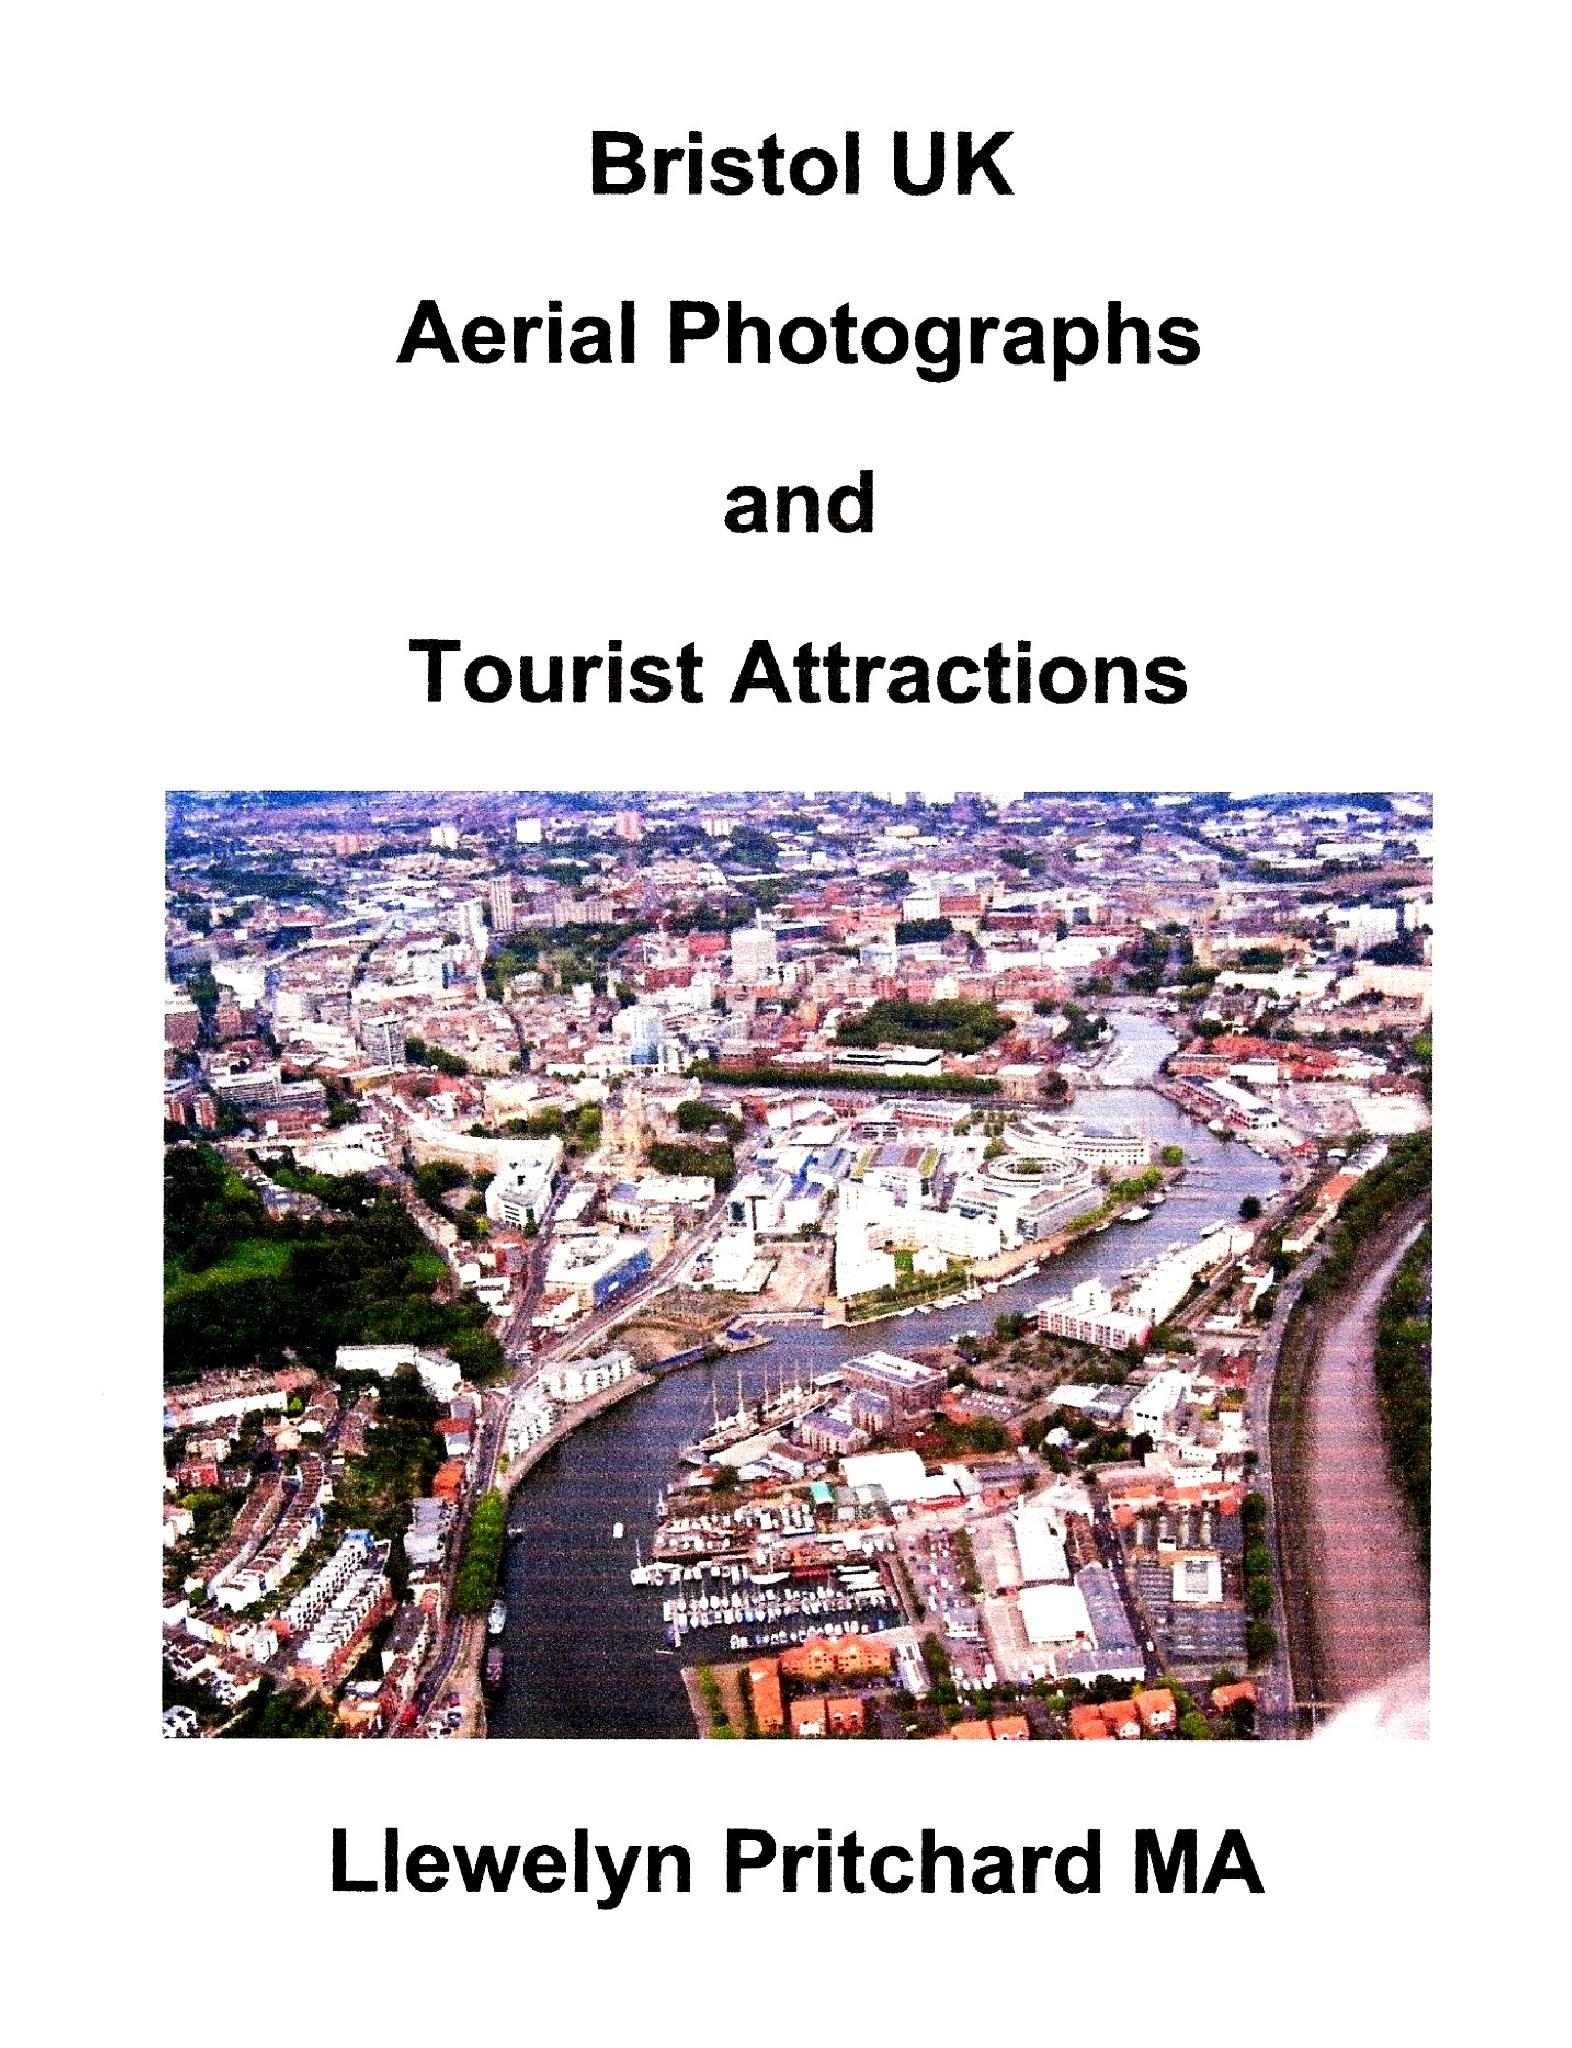 Bristol UK Aerial Photographs and Tourist Attractions by Llewelyn Pritchard